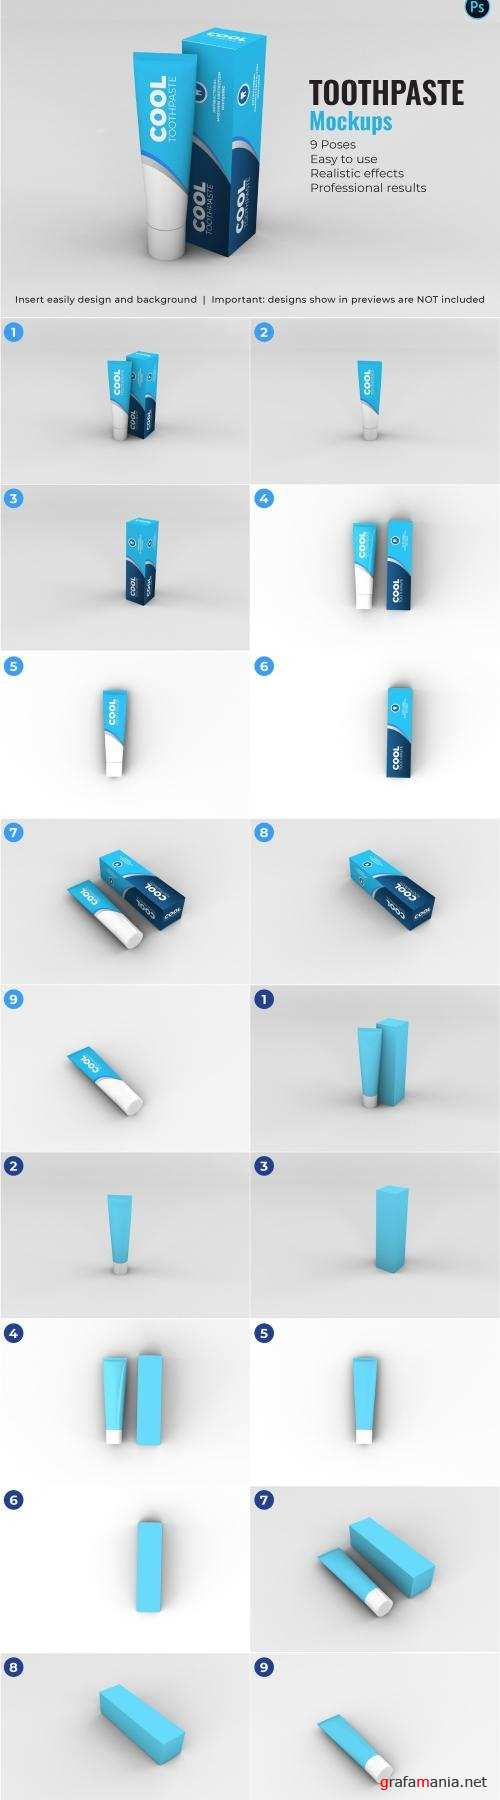 Toothpaste Mockups - 9 Poses - 3340924